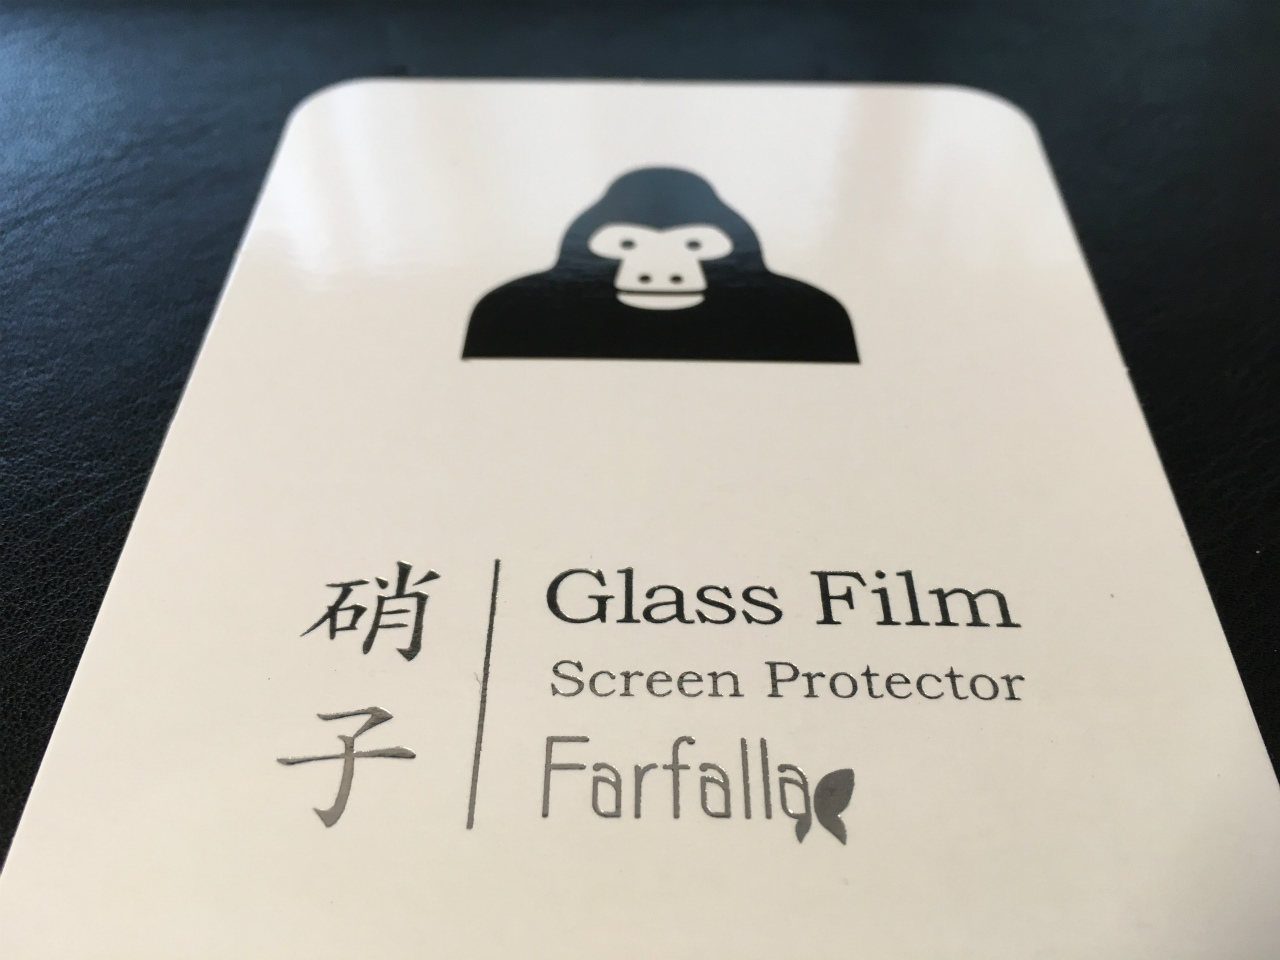 1249-201605_Farfalla Glass Film Gorilla iPhone SE 01